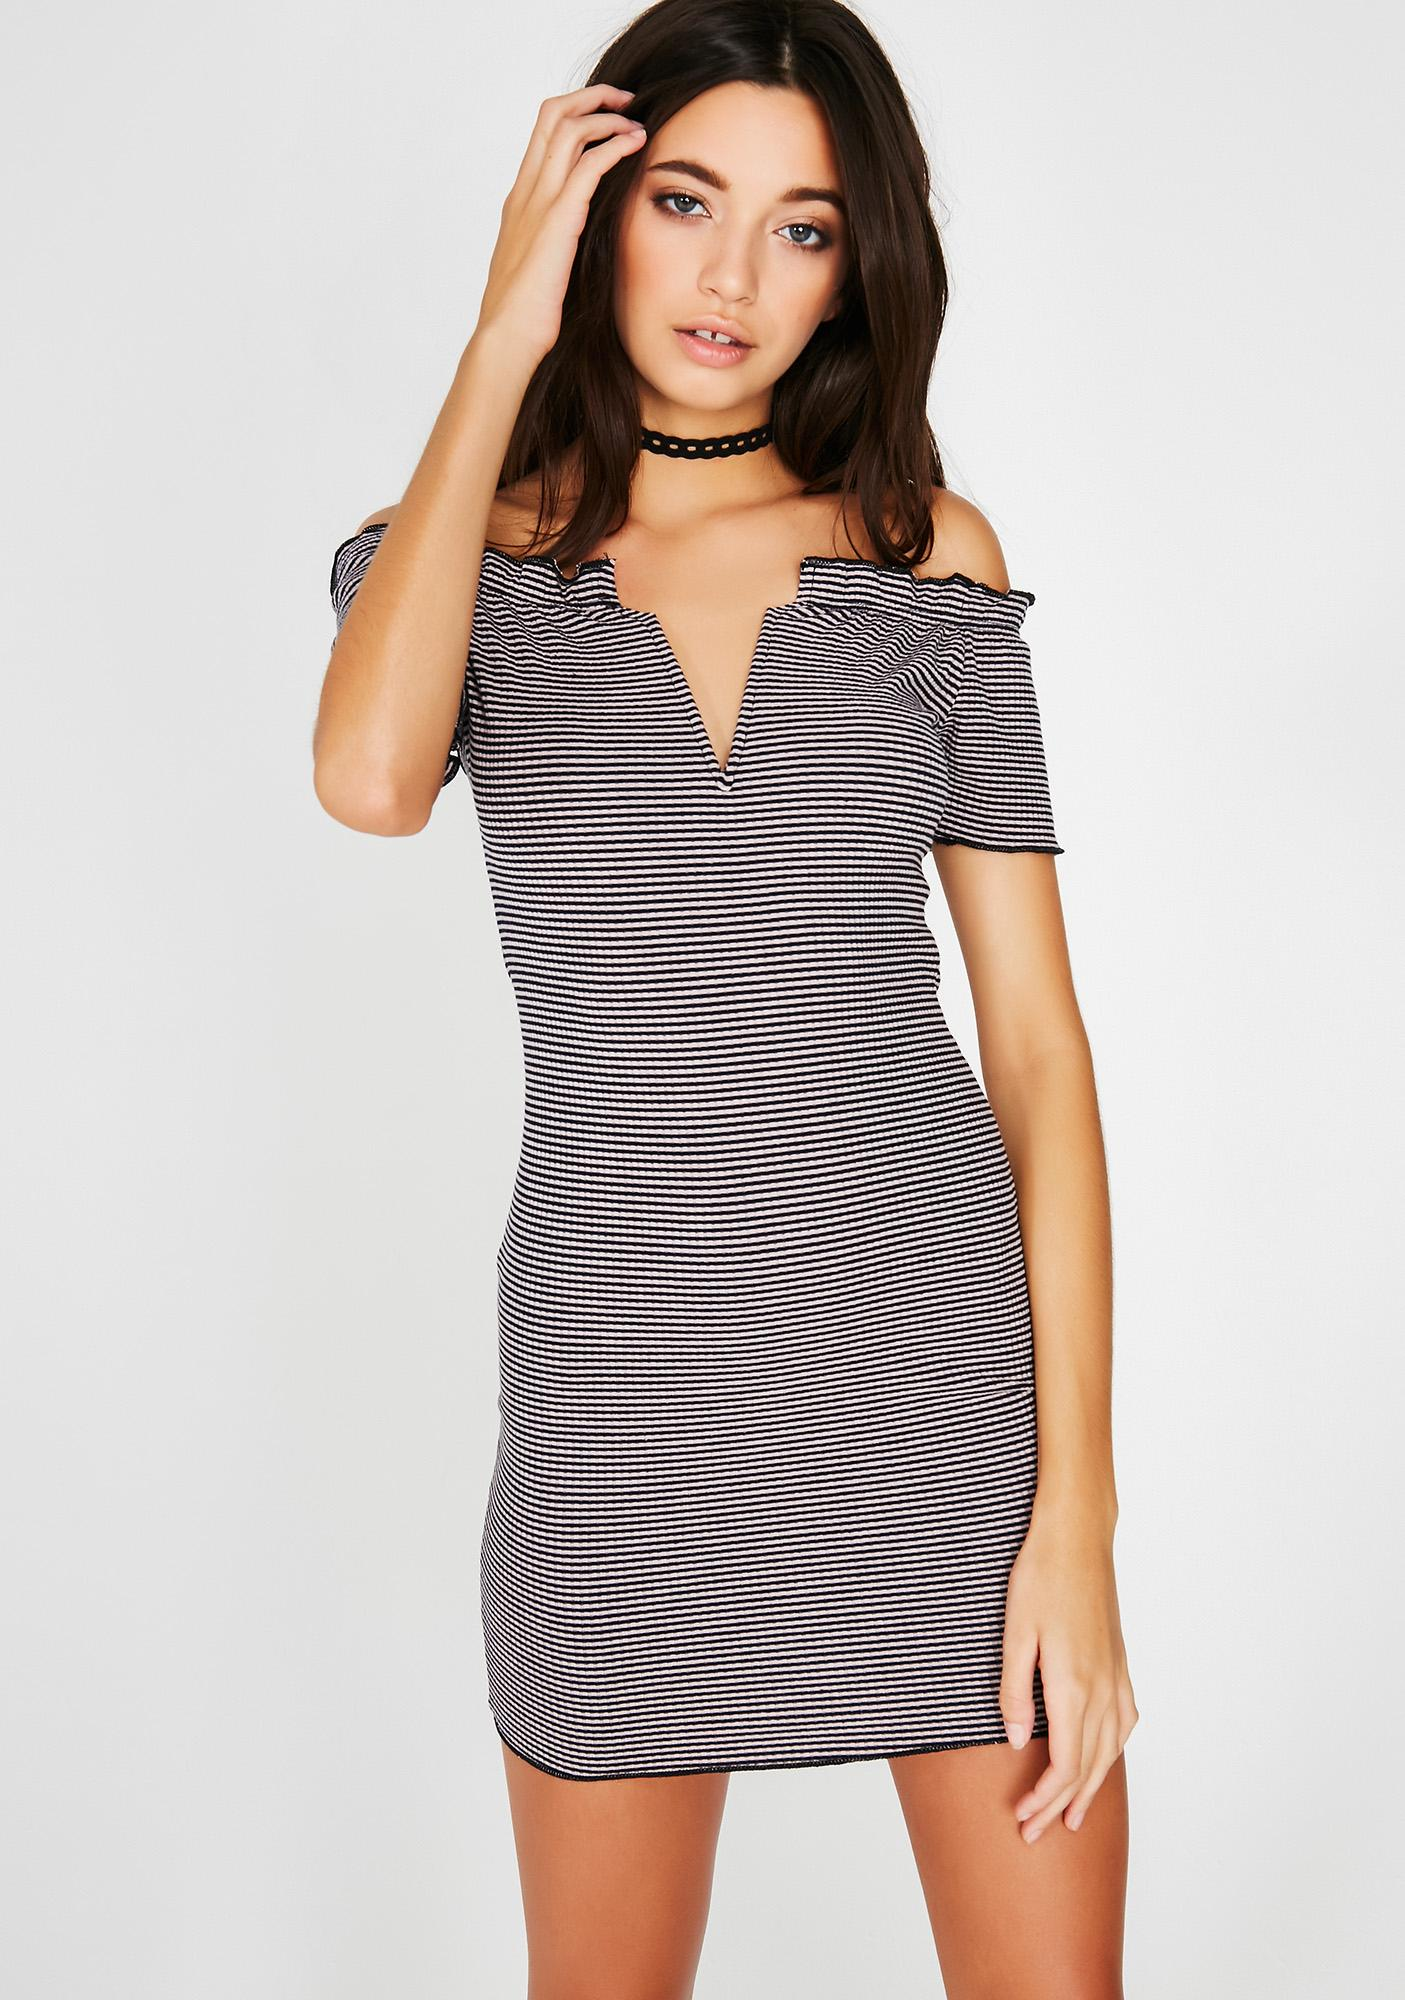 Most Wanted Striped Dress